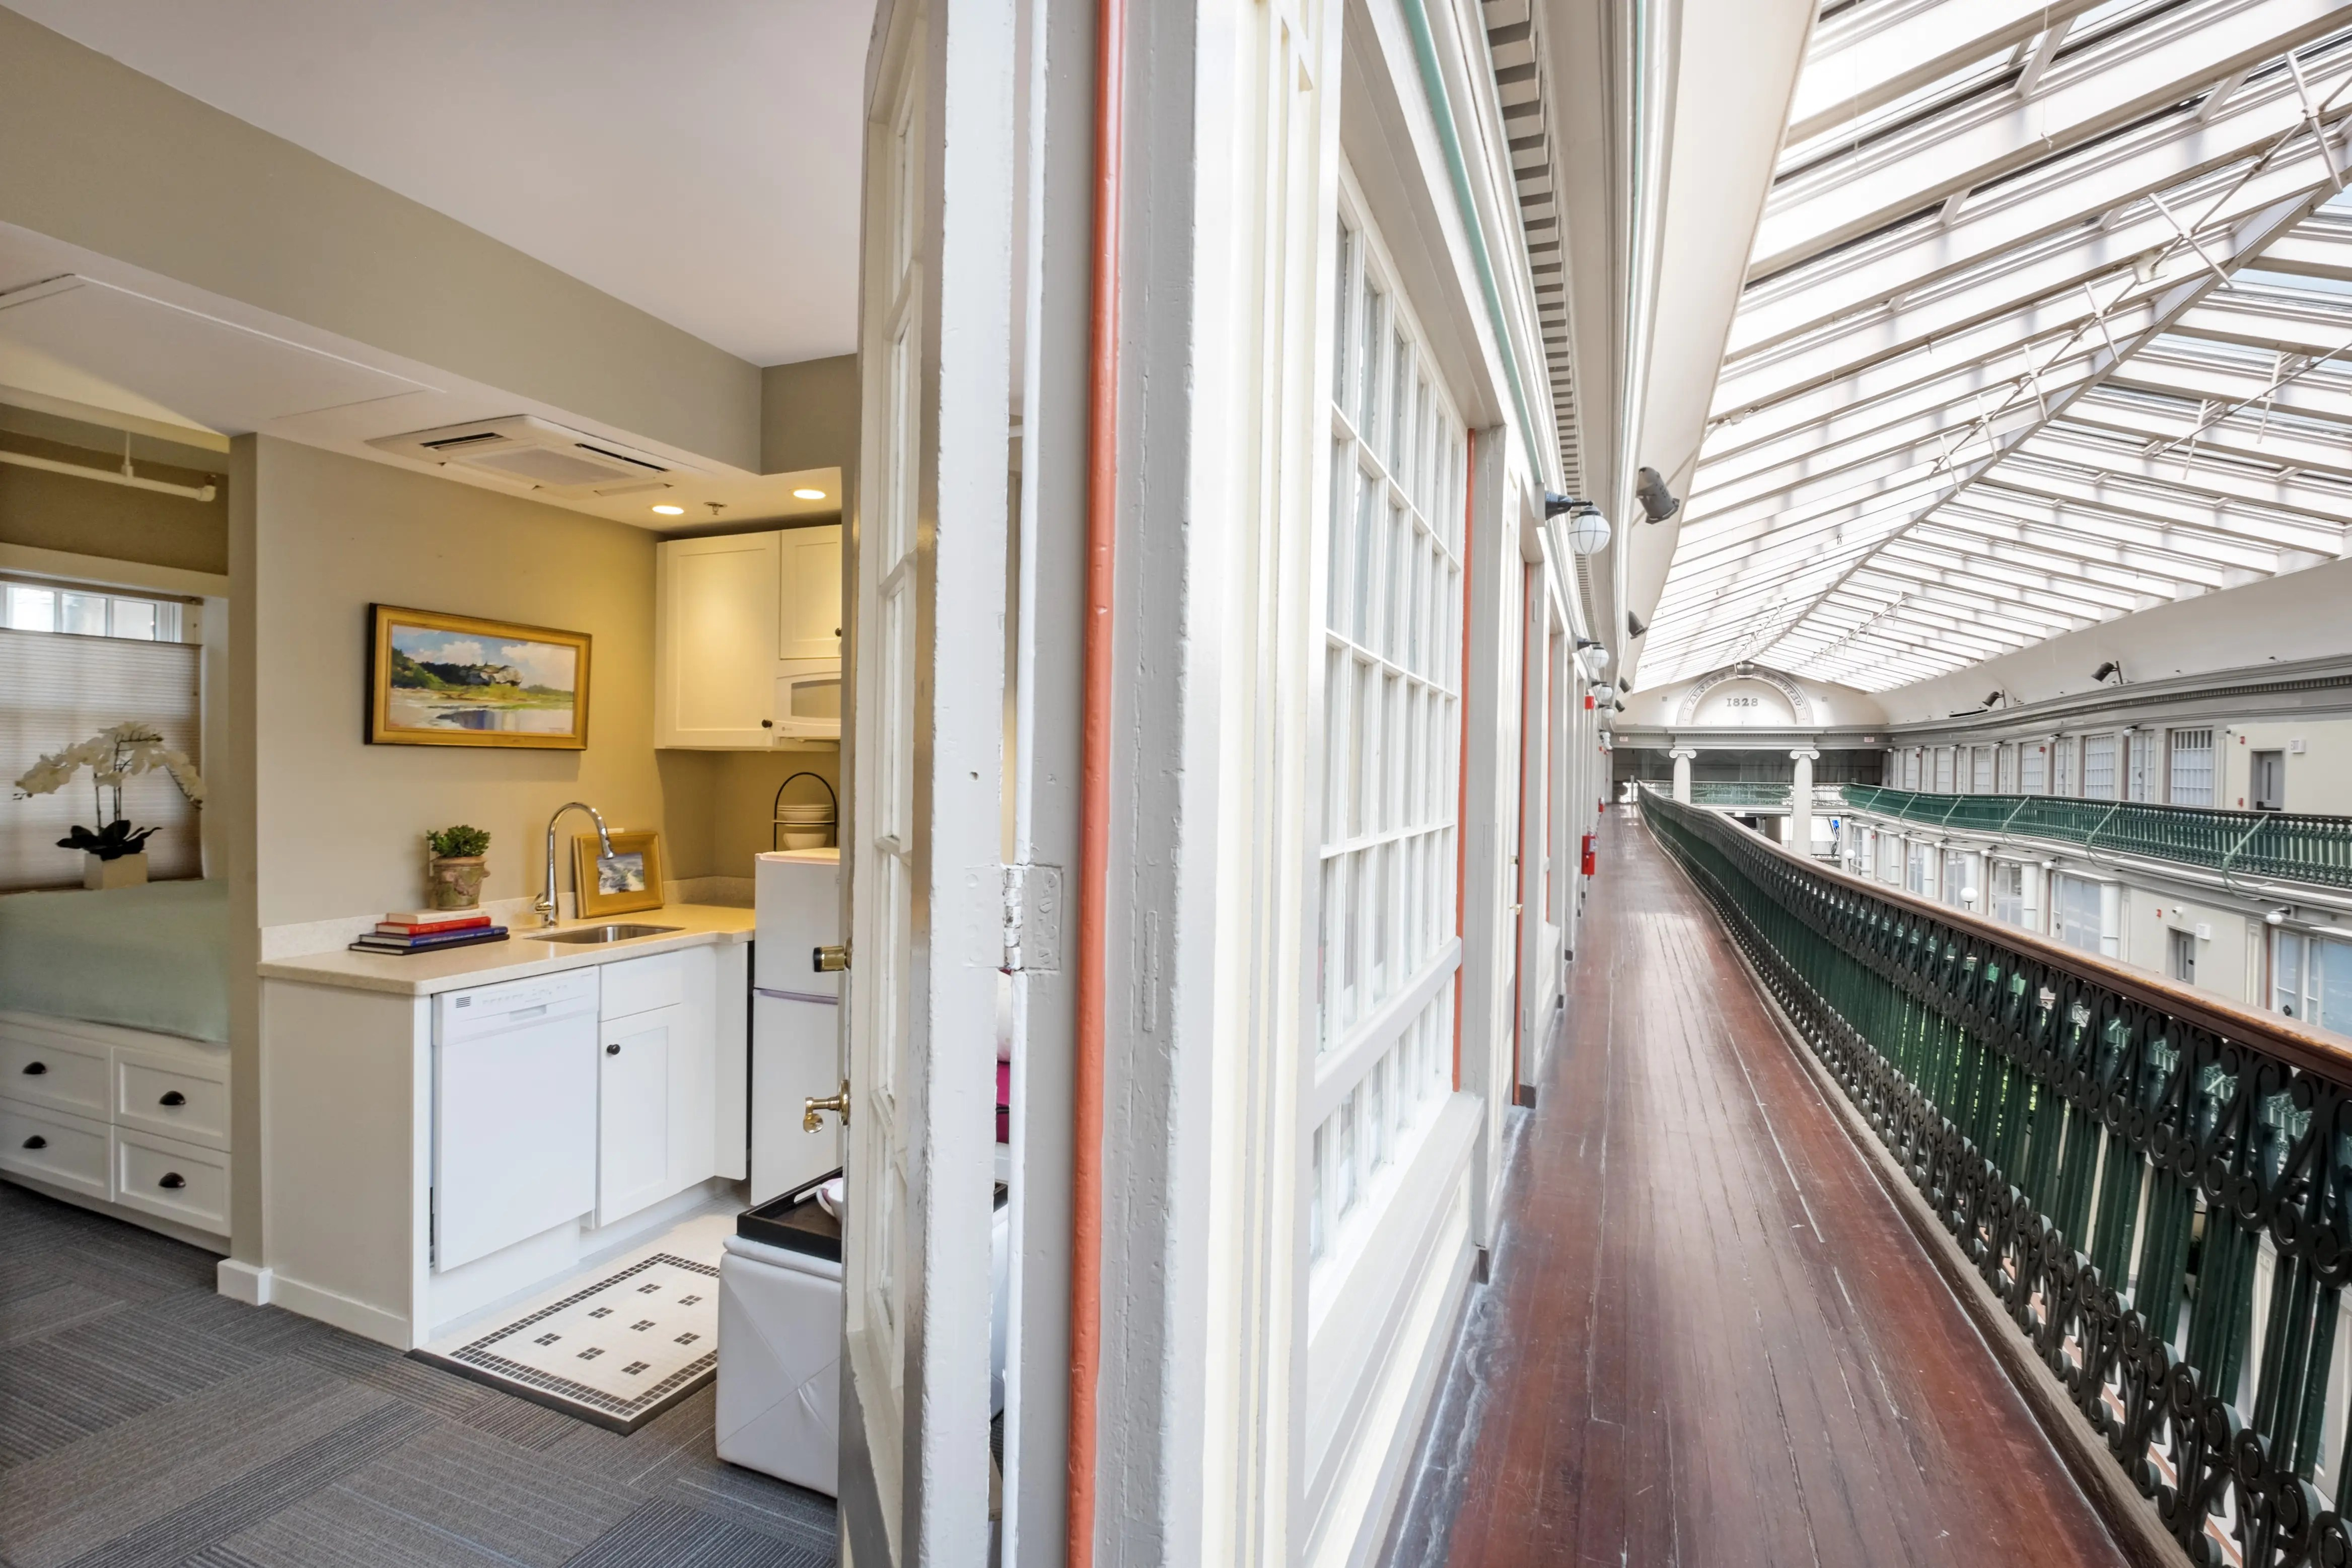 Americas oldest shopping mall is now micro apartments  Business Insider